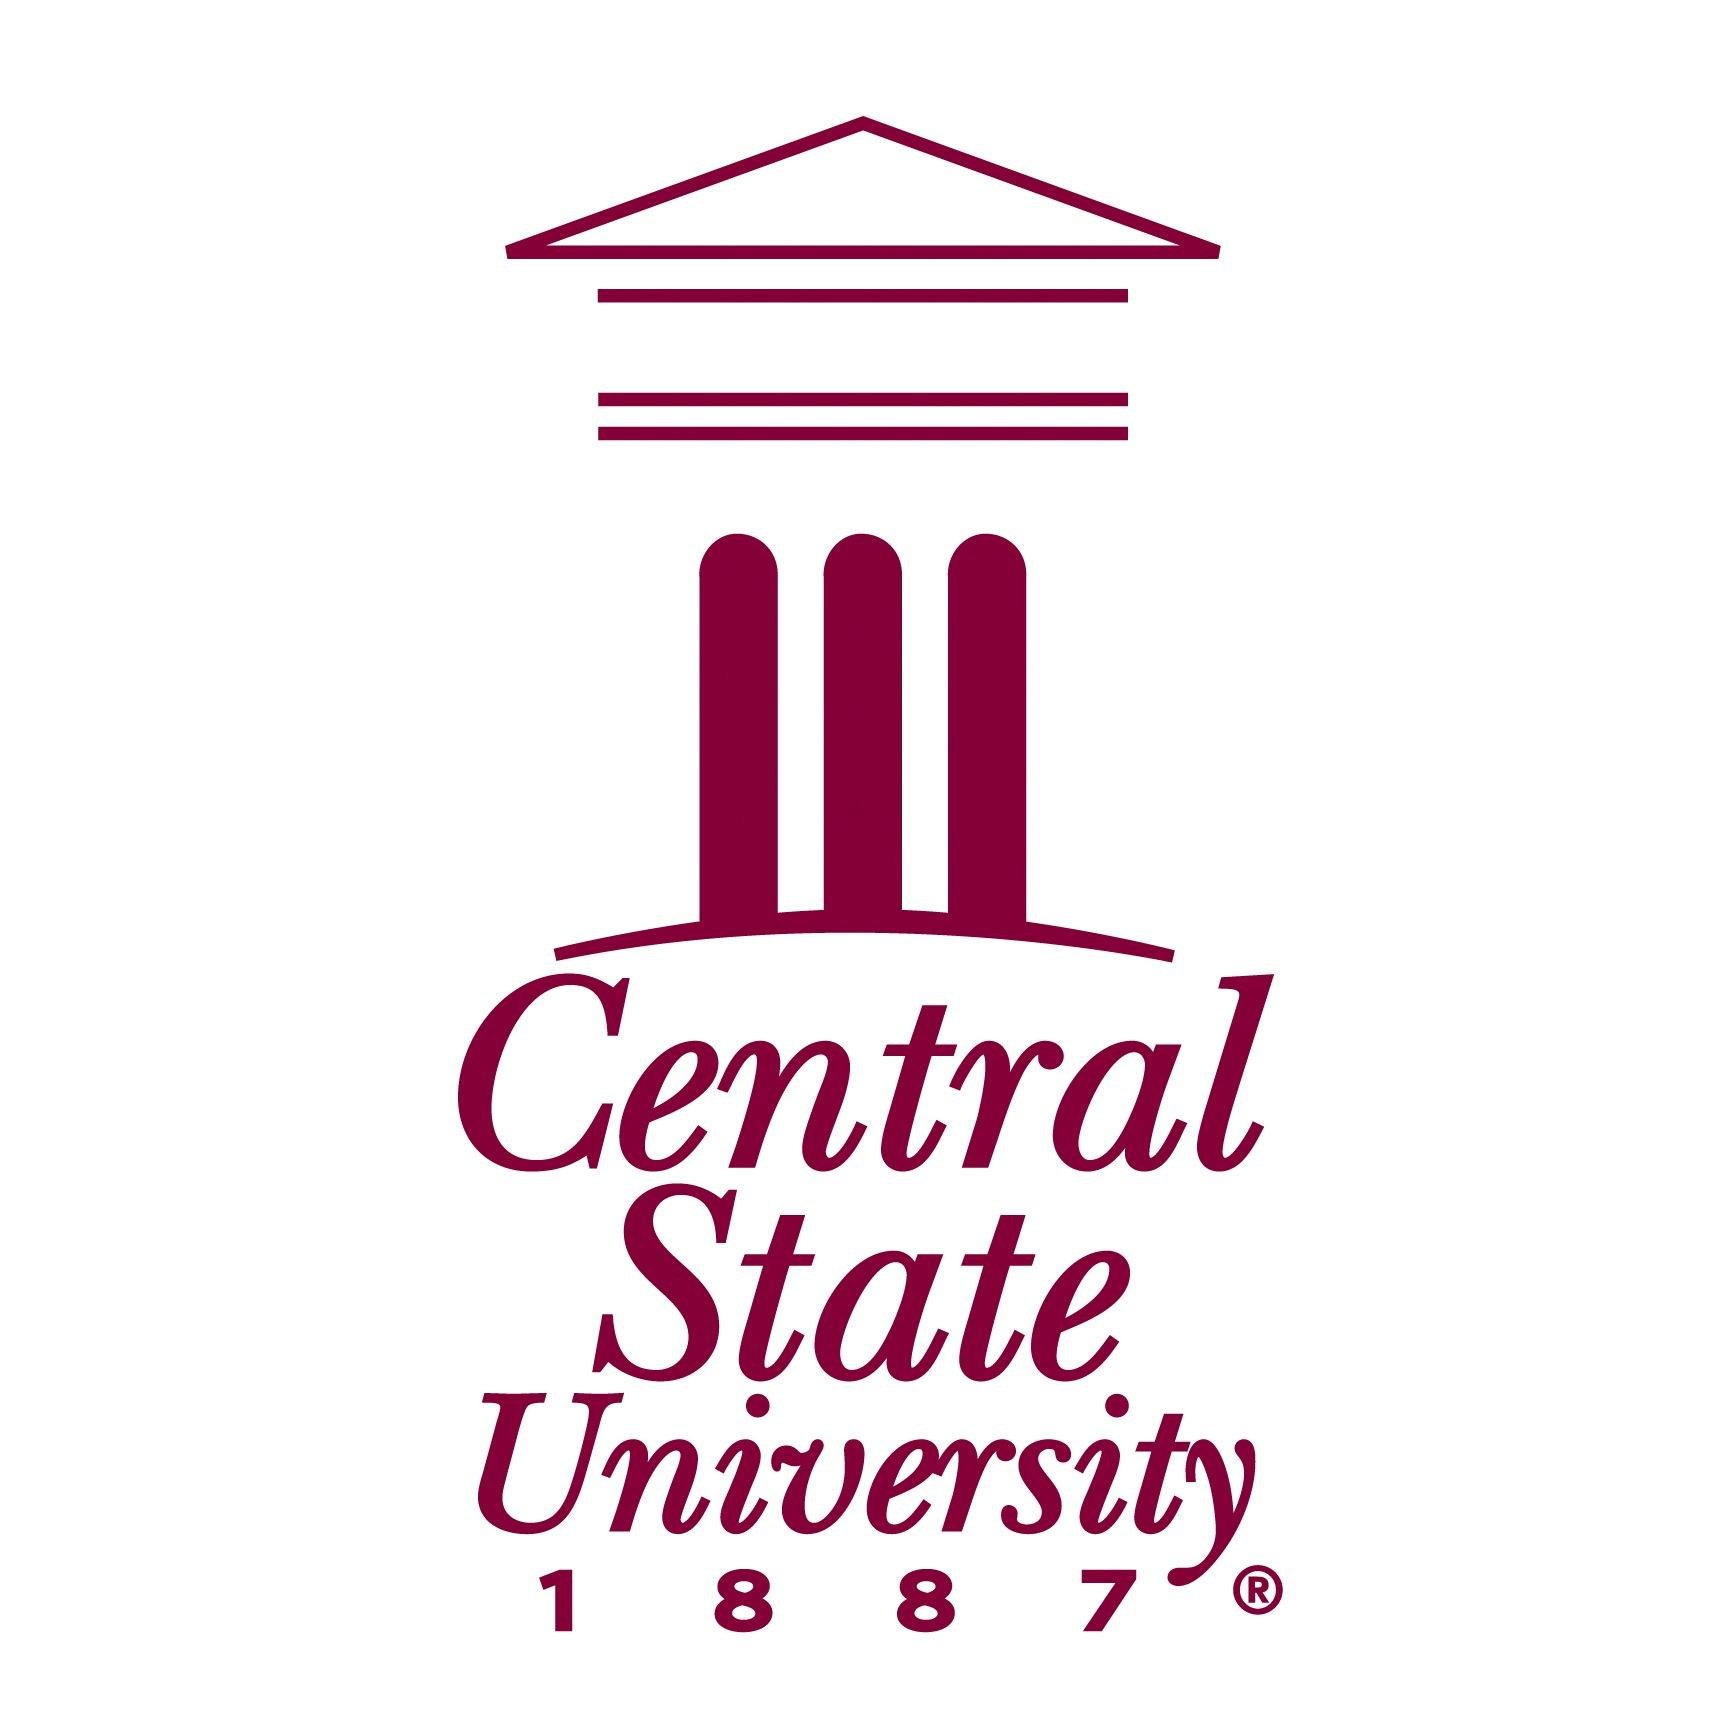 CENTRAL STATE.jpeg